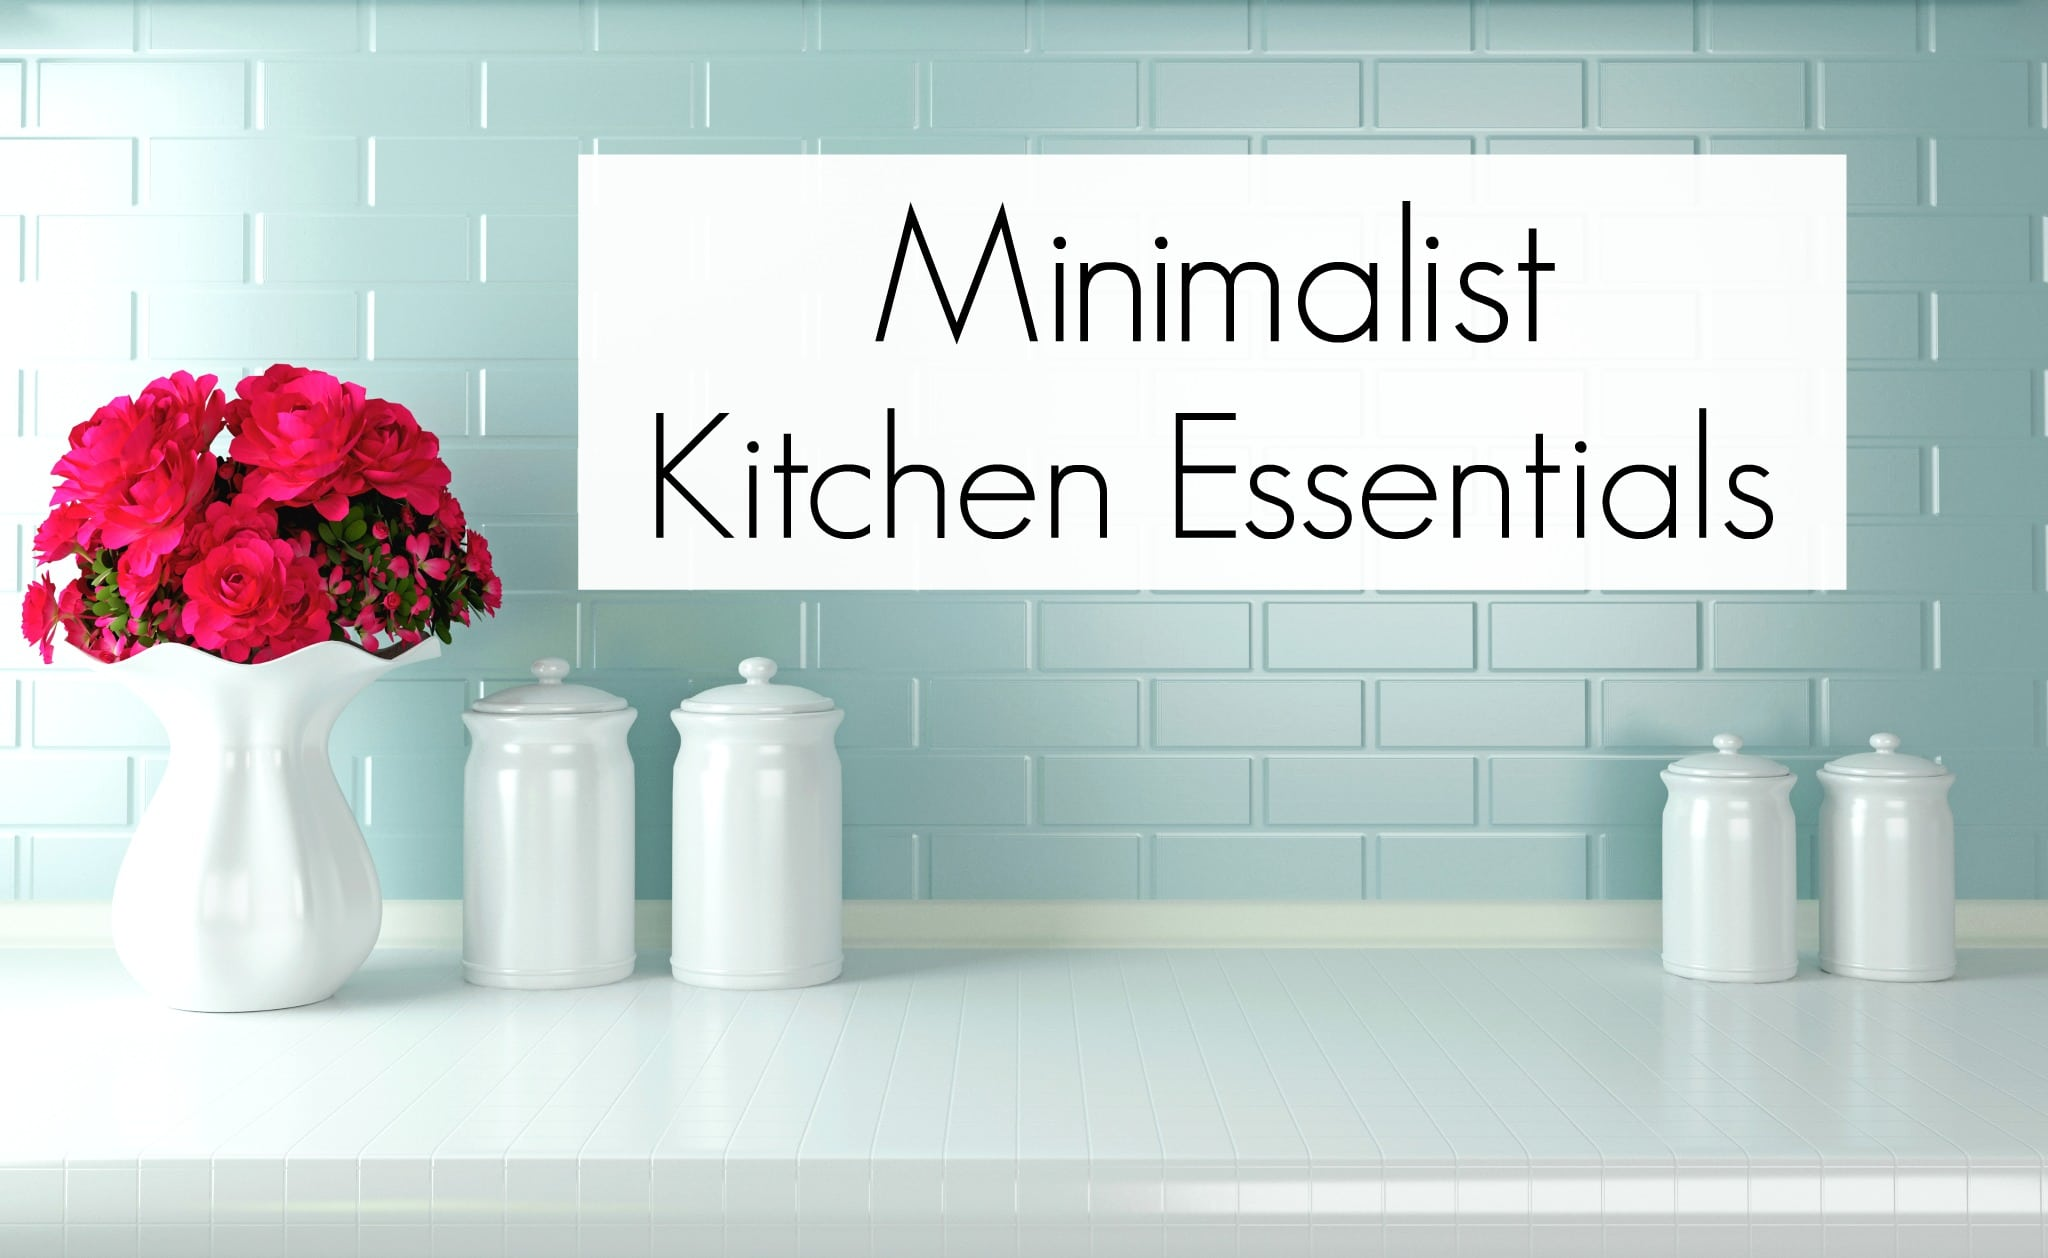 Minimalist Kitchen Essentials List - Get Green Be Well